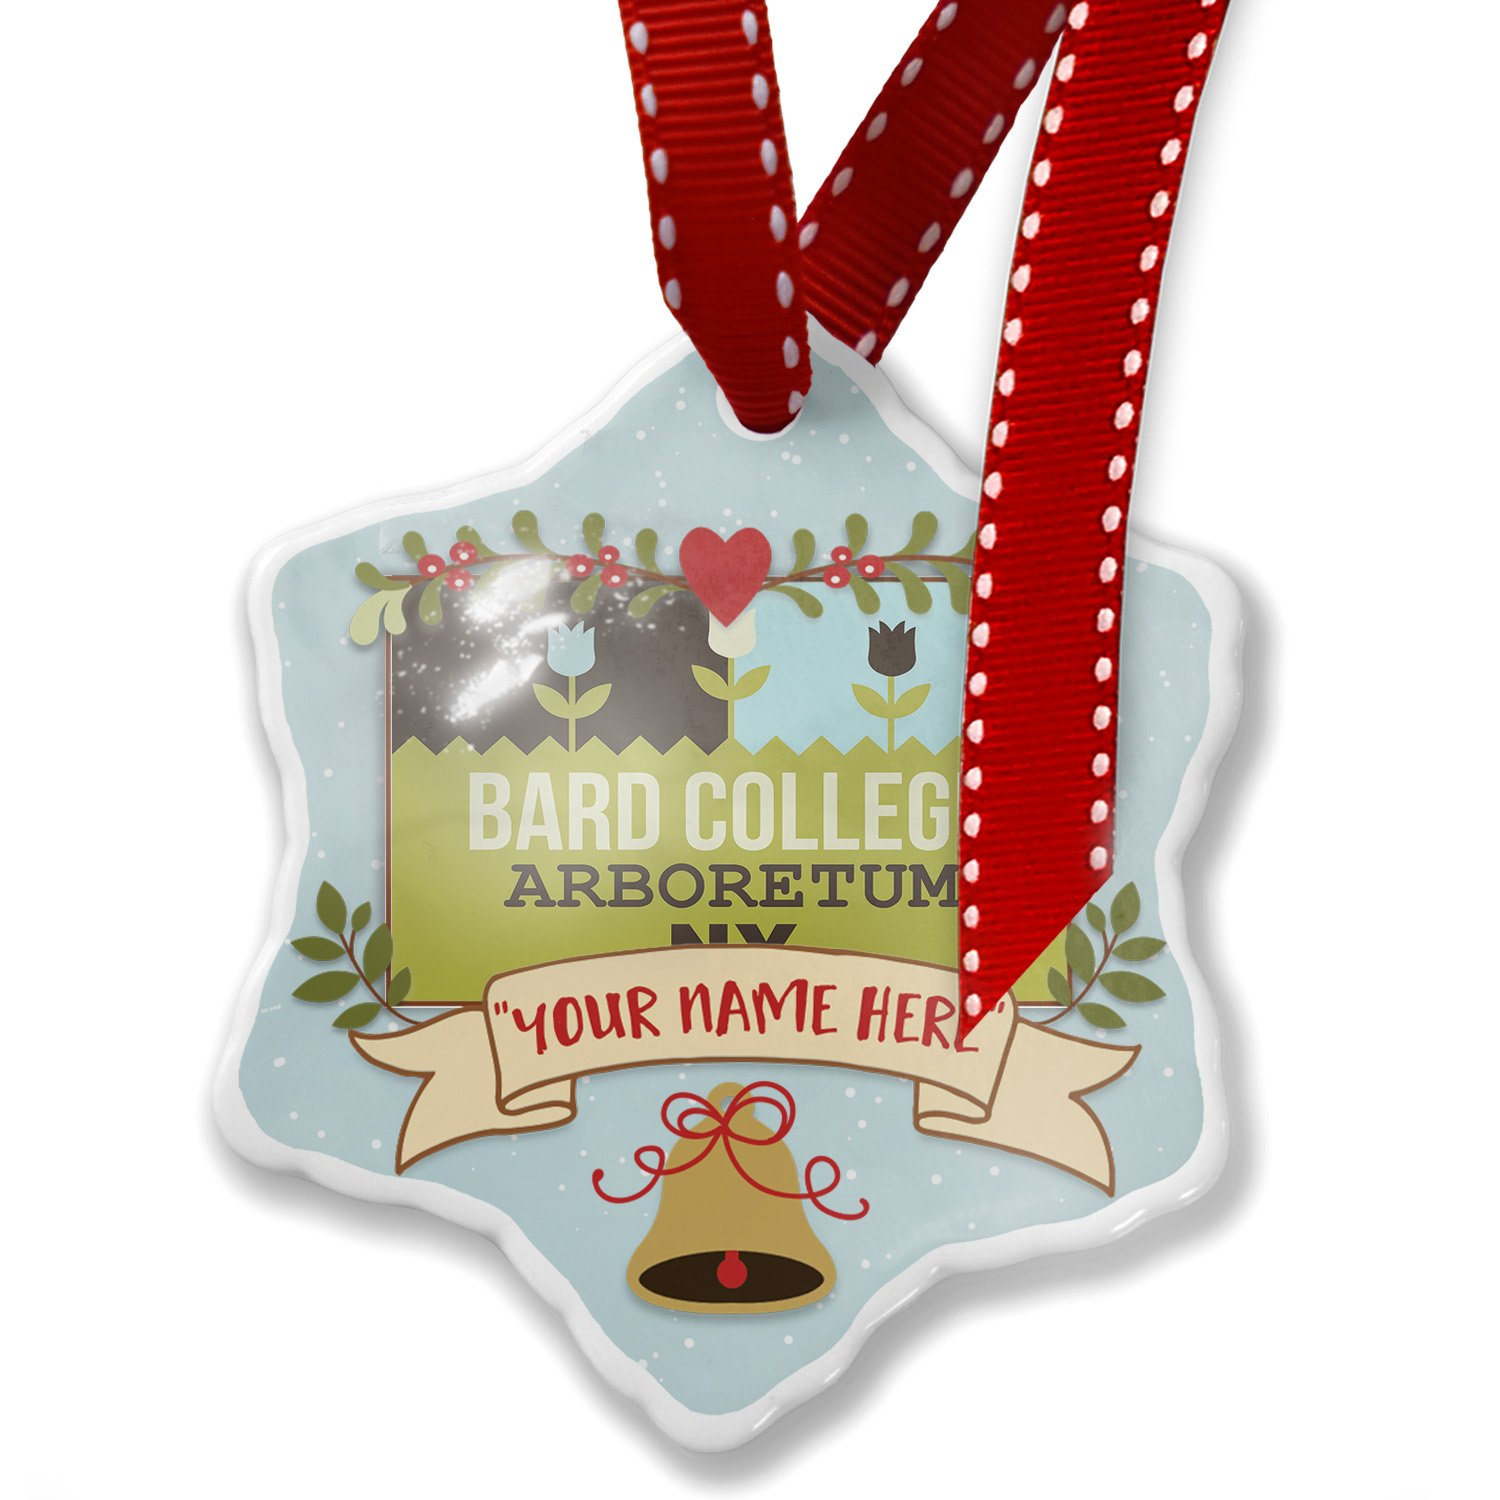 Add Your Own Custom Name, US Gardens Bard College Arboretum - NY Christmas Ornament NEONBLOND